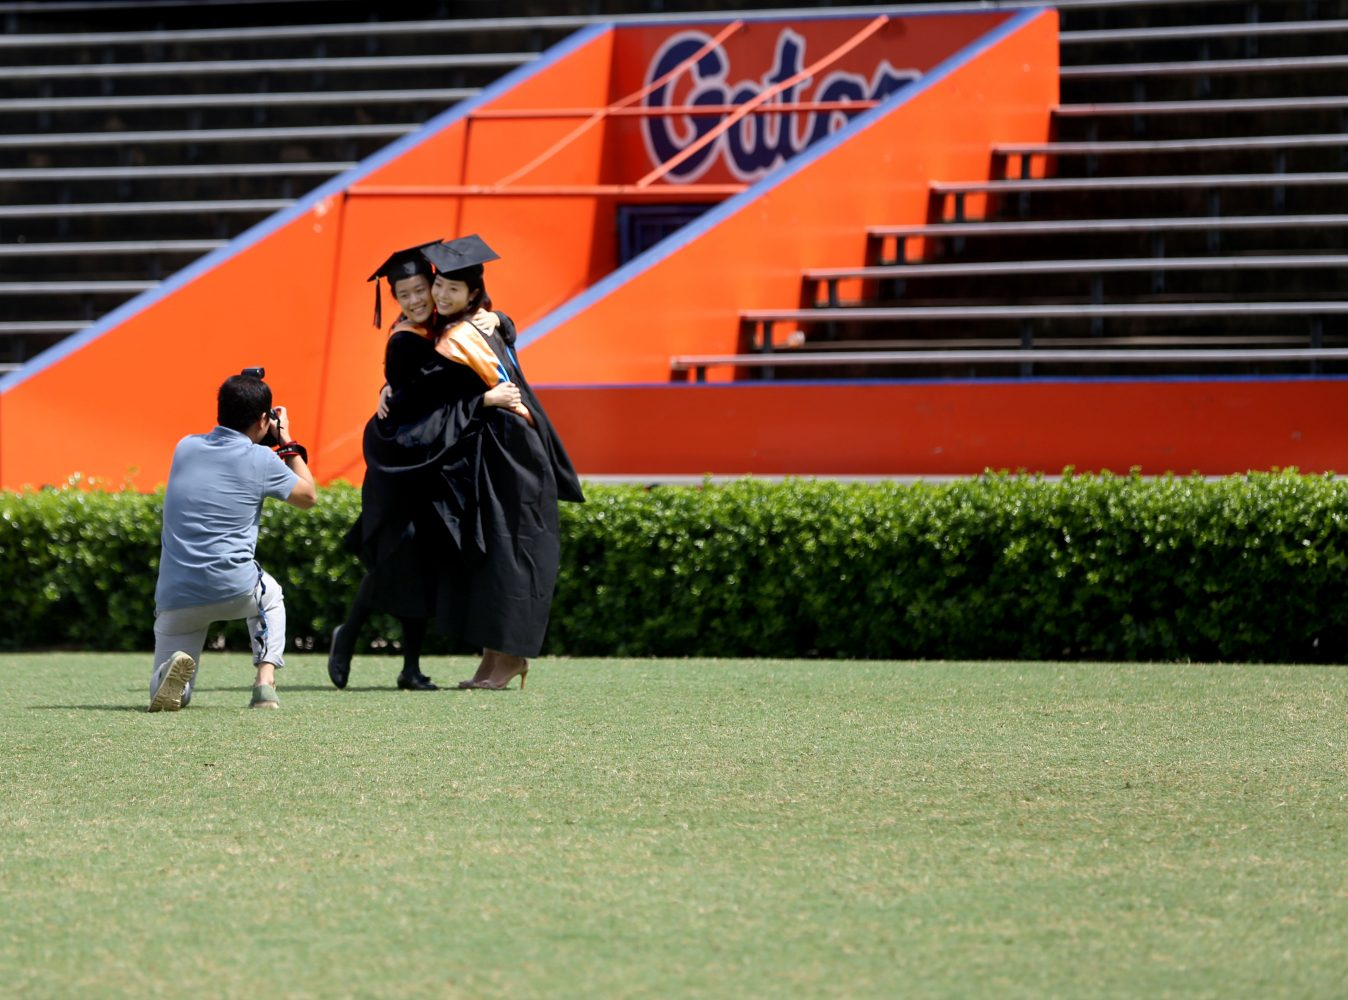 UF graduates pose for photos at Ben Hill Griffin Stadium on May 1, 2014, in Gainesville, Fla.